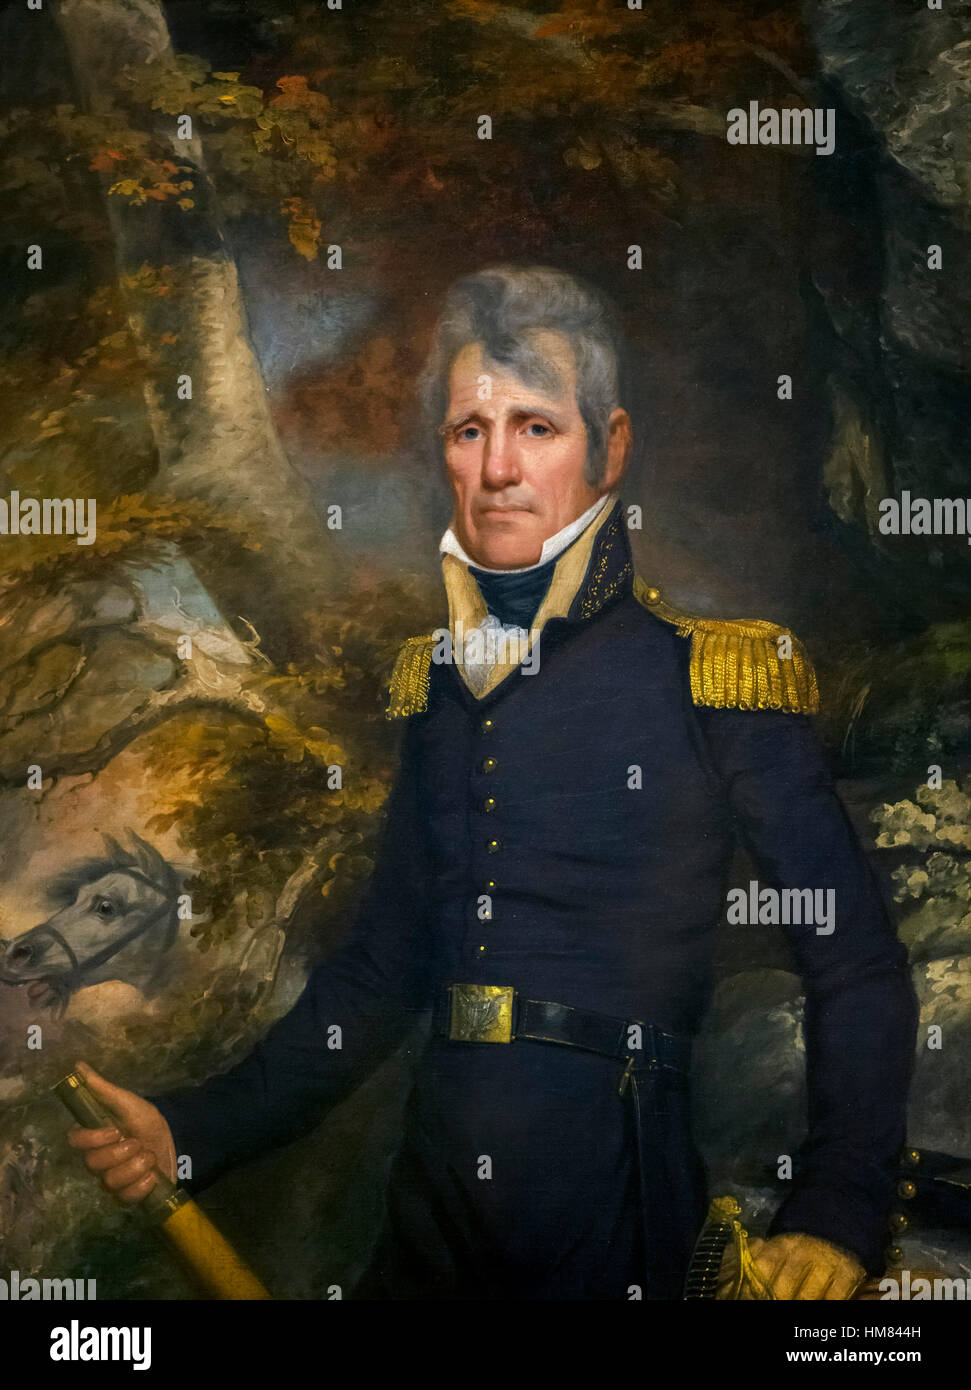 Andrew Jackson, 7th president of the United States, in General's uniform, portrait by John Wesley Jarvis, c.1819 - Stock Image